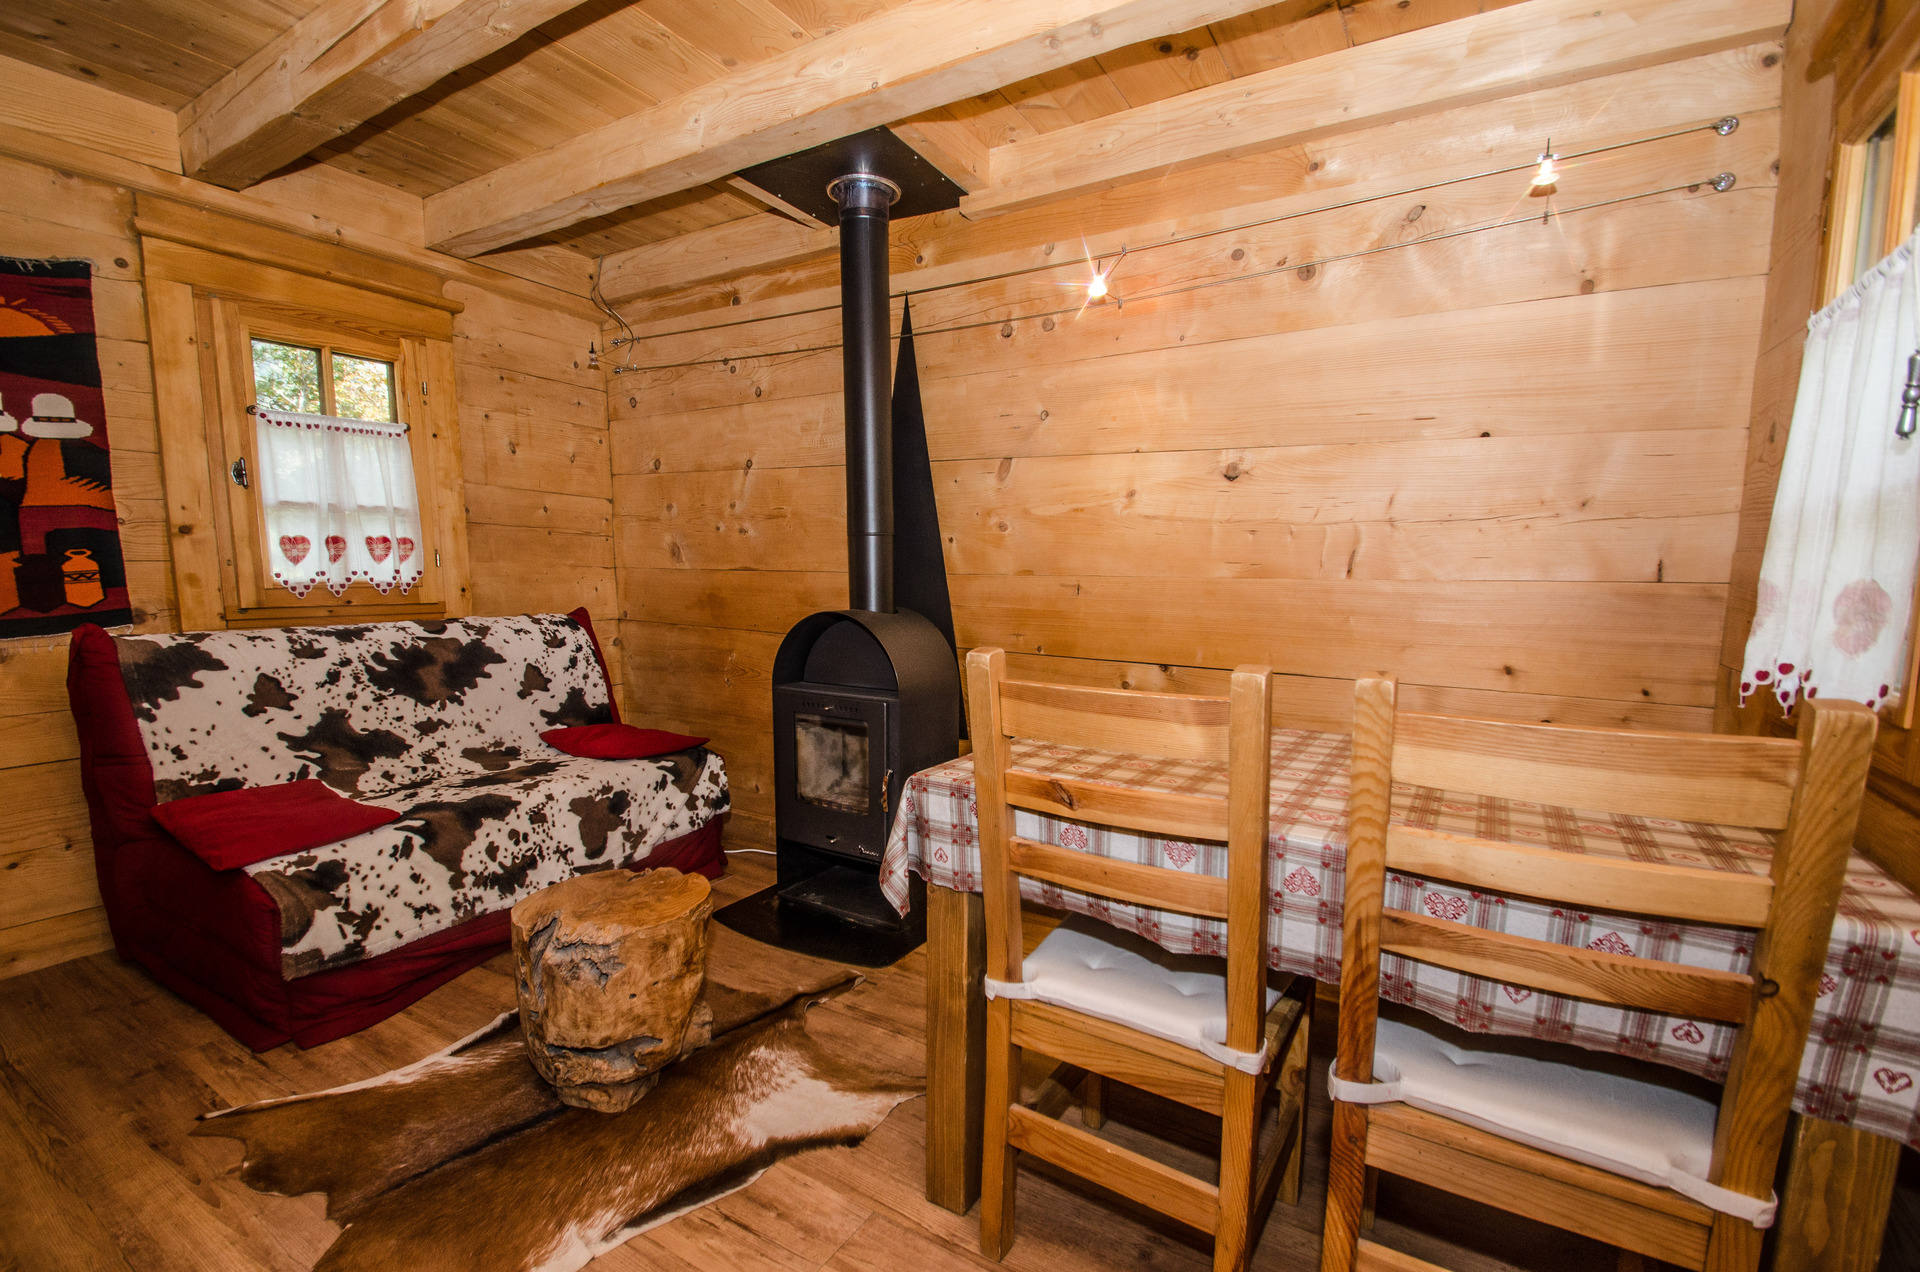 LES PRAZ DE CHAMONIXCosy Mazot For 2/3 People Very Nice 35 Sqm Mazot (small  Chalet) On Two Levels For 2 To 3 People, Located In The Residential Area Of  Les ...